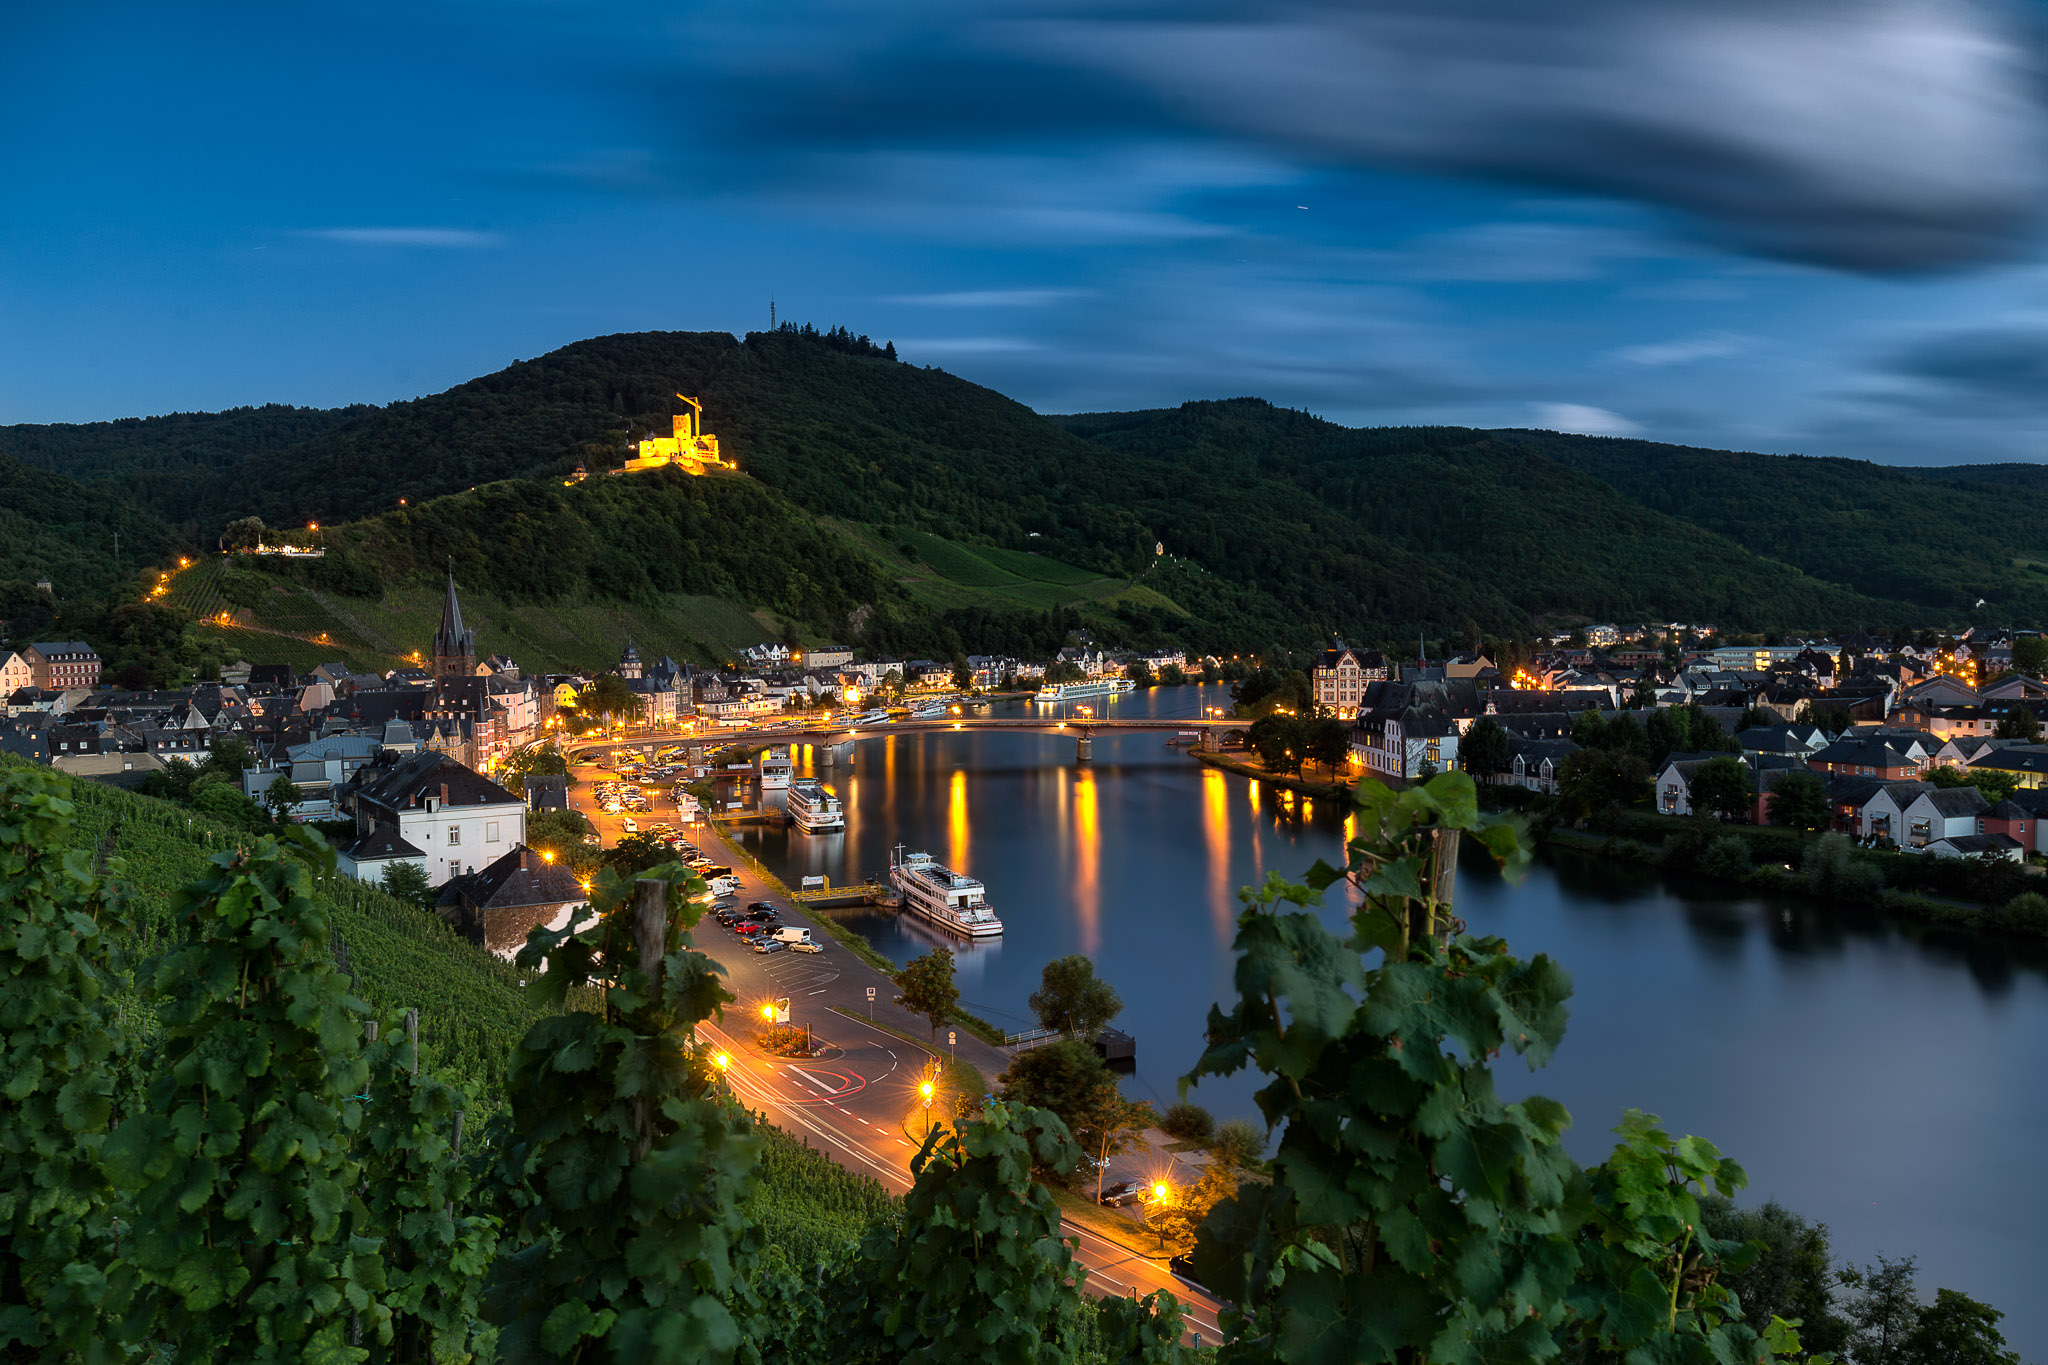 View along Moselle, Germany